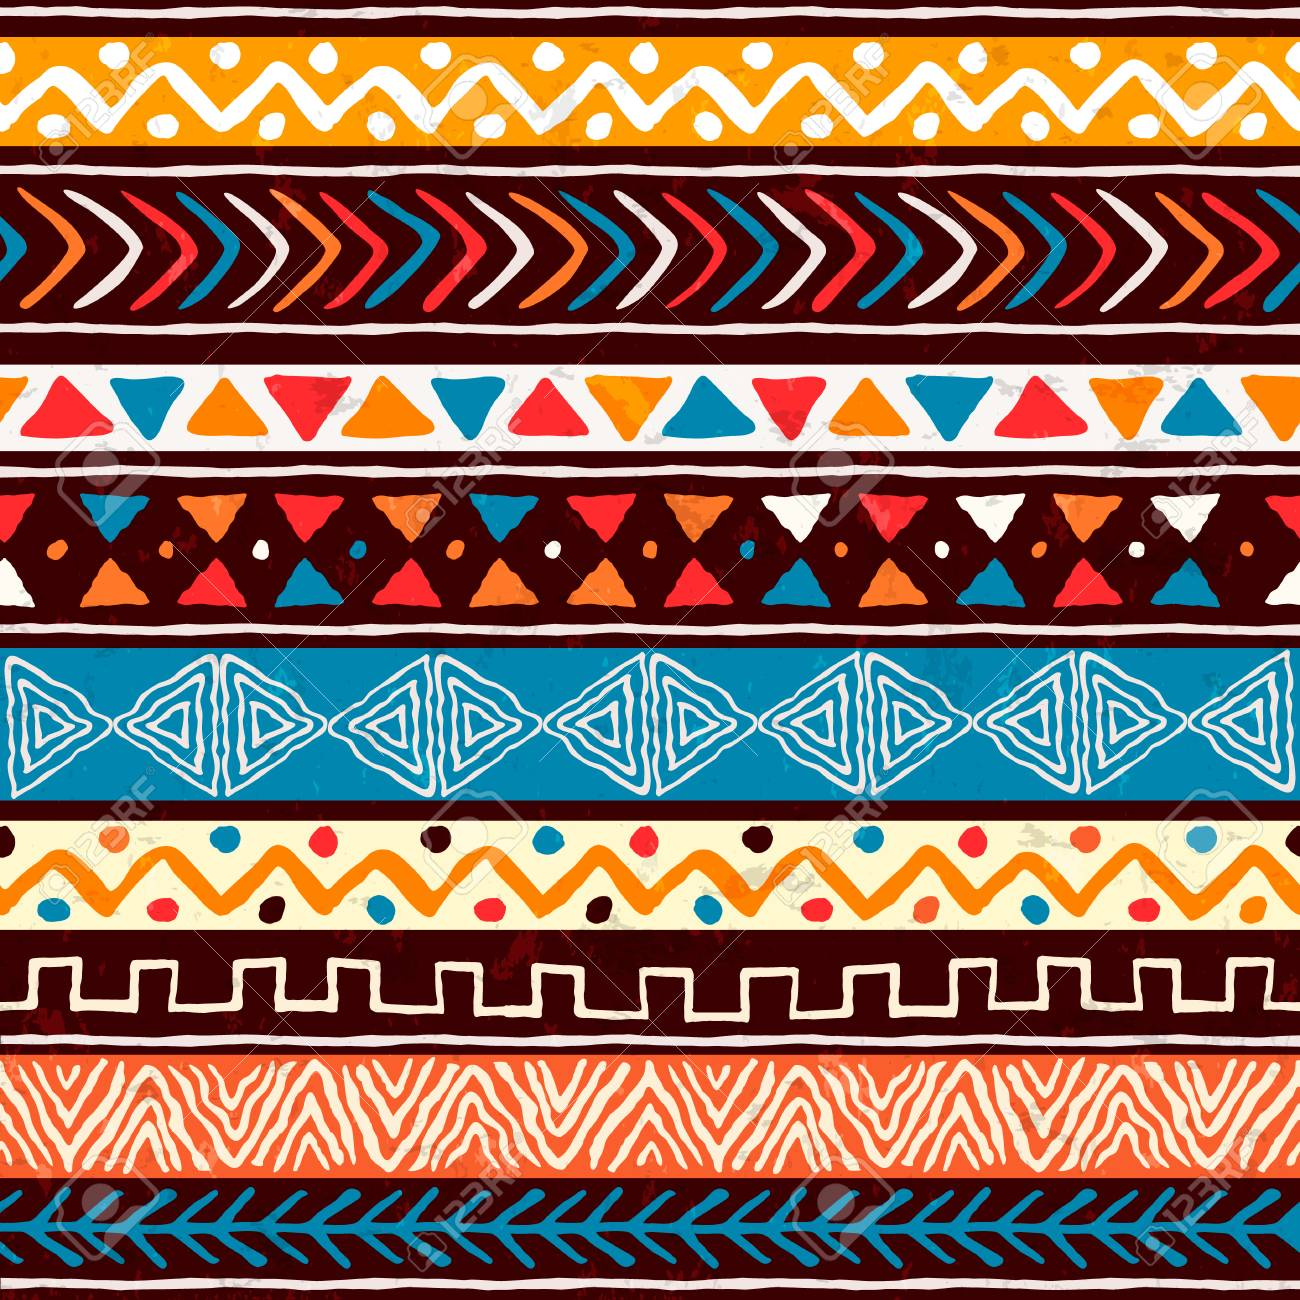 Abstract african art style seamless pattern. Hand drawn tribal decoration background with boho doodle shapes and ethnic symbols. - 130838494